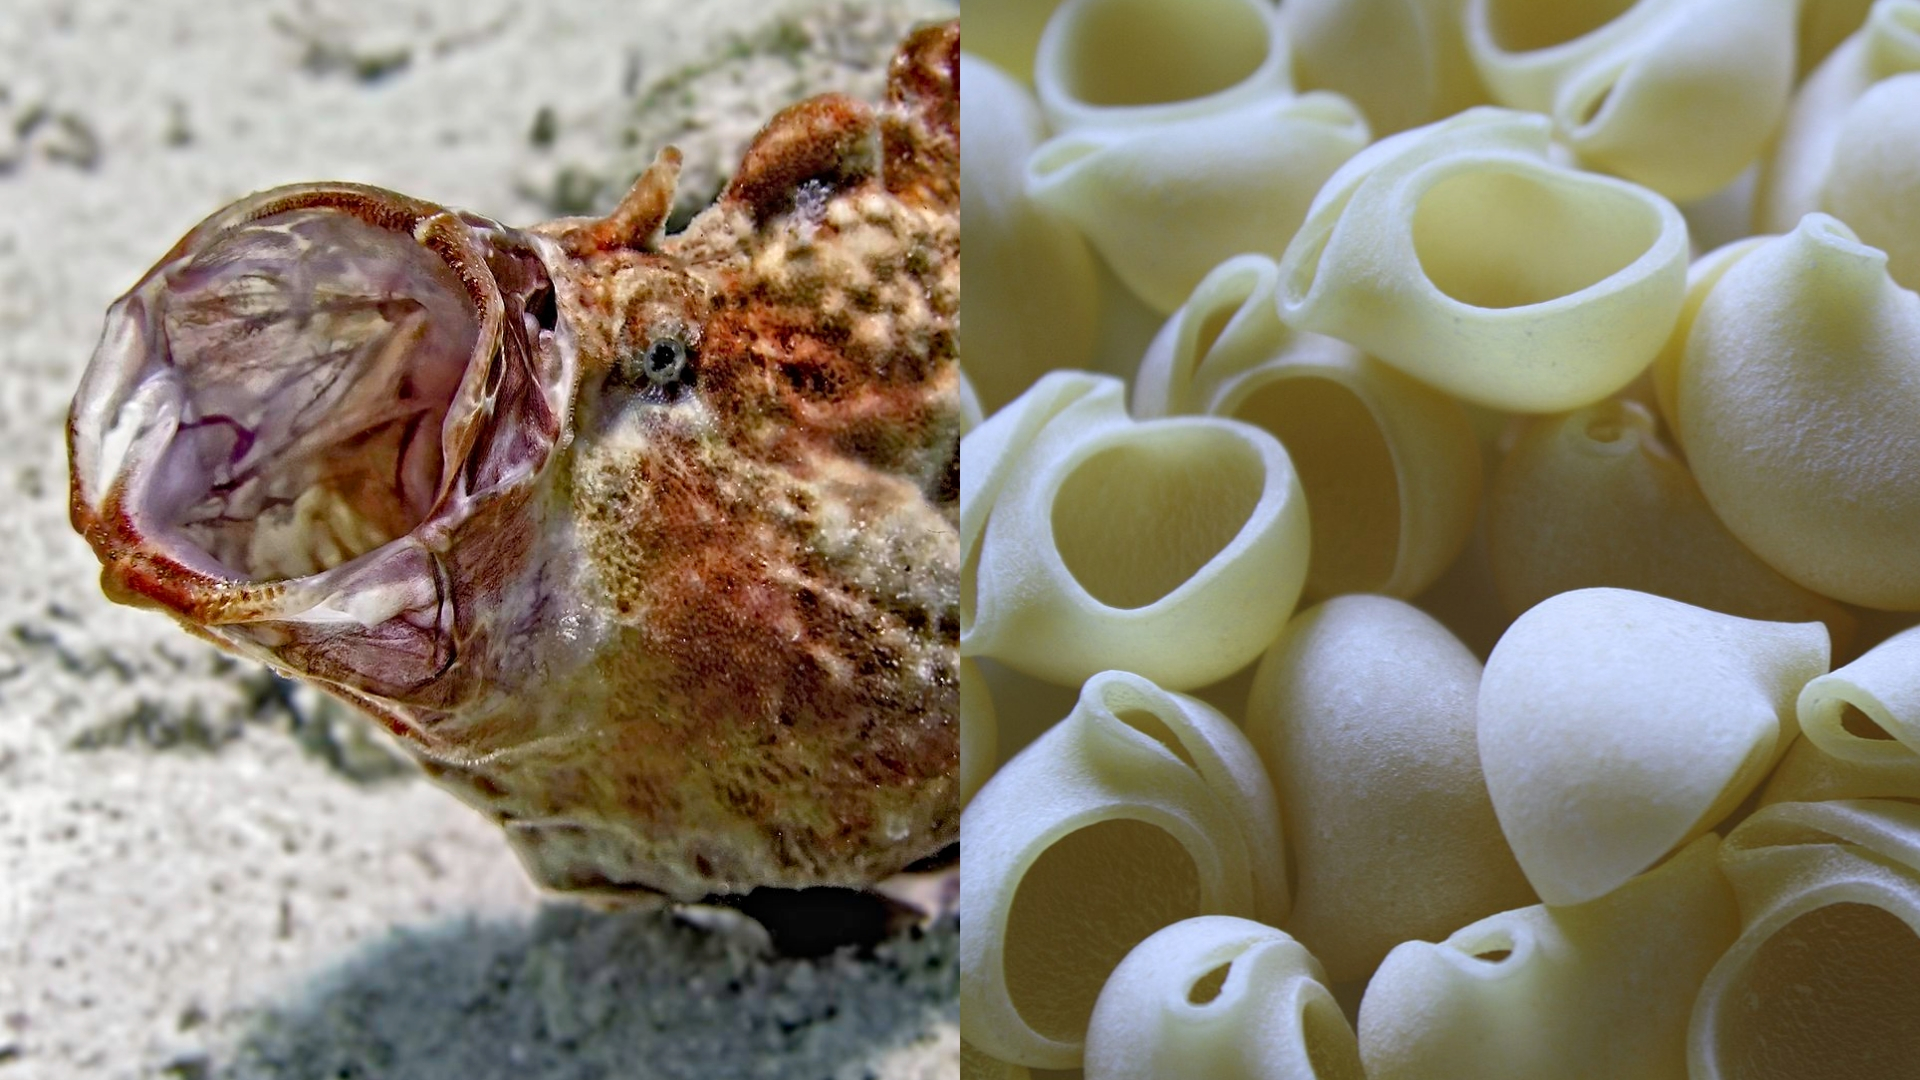 a splitscreen image of a frogfish yawning, to the left of dried lumache pasta